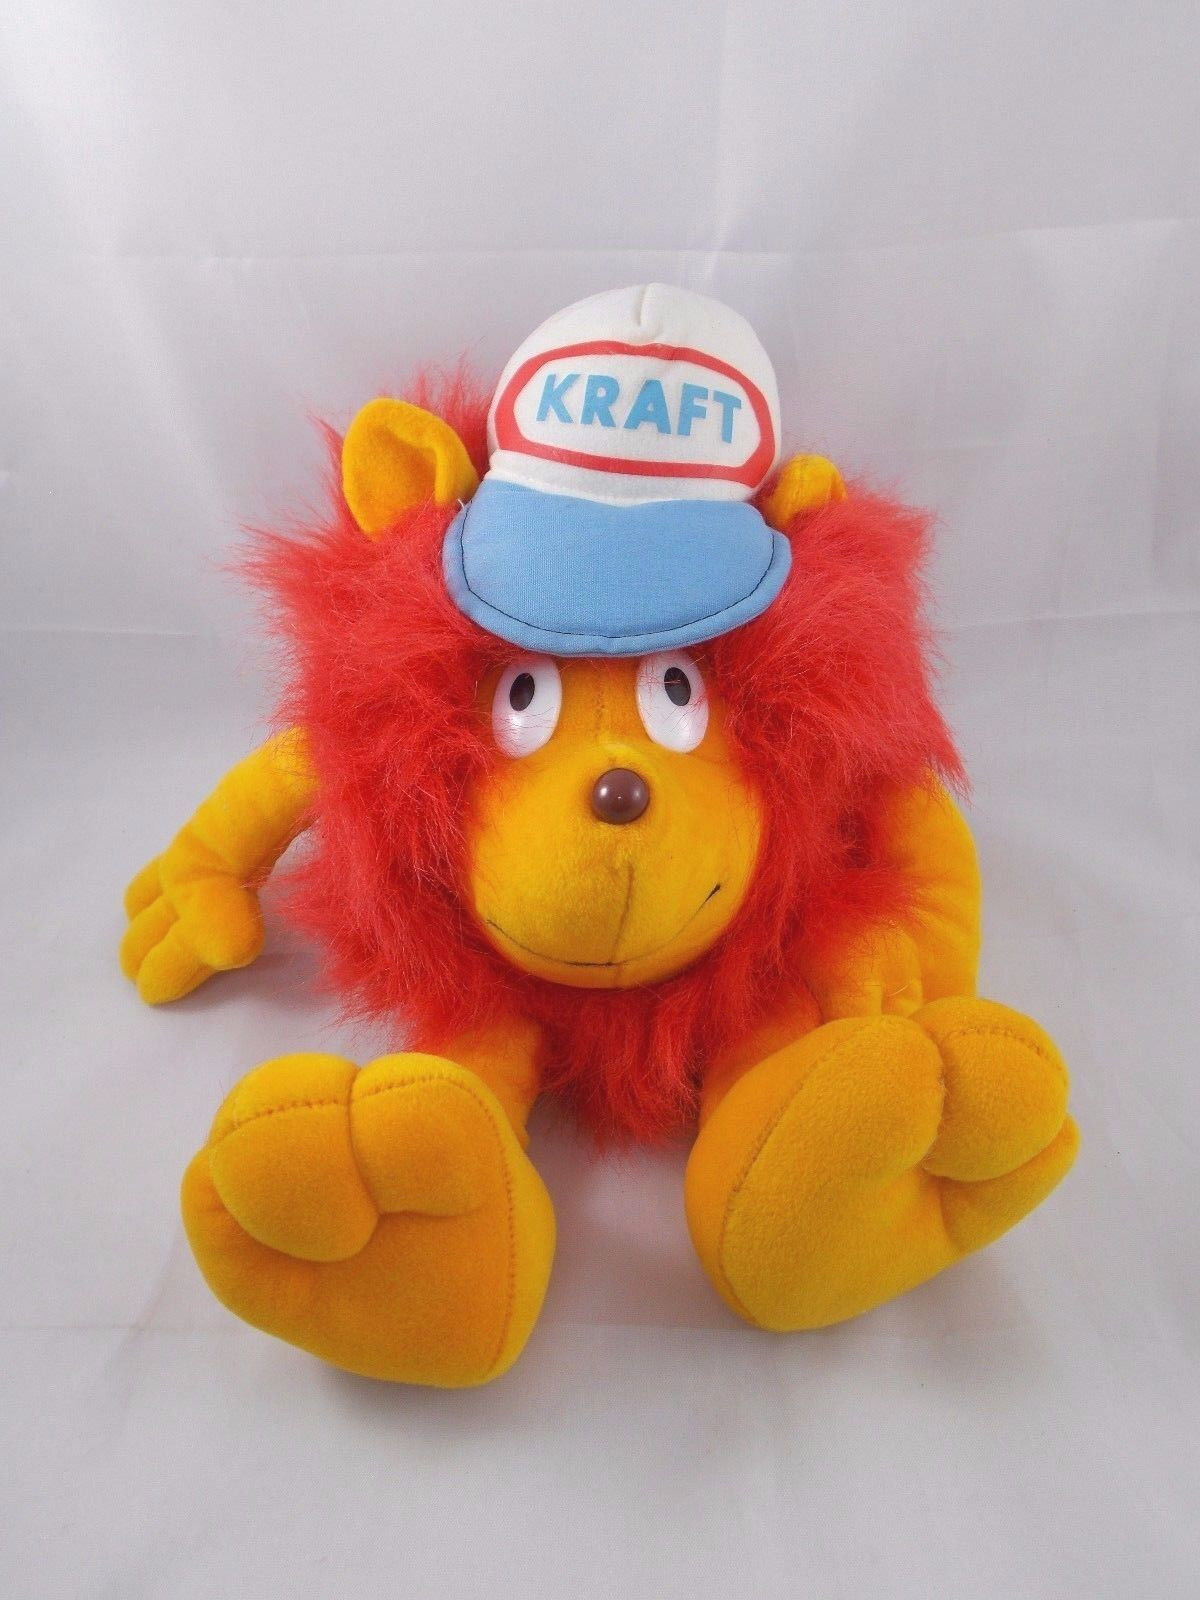 Animal Fair Kraft Plush Creature Merch Madness 12  Korea Stuffed Animal